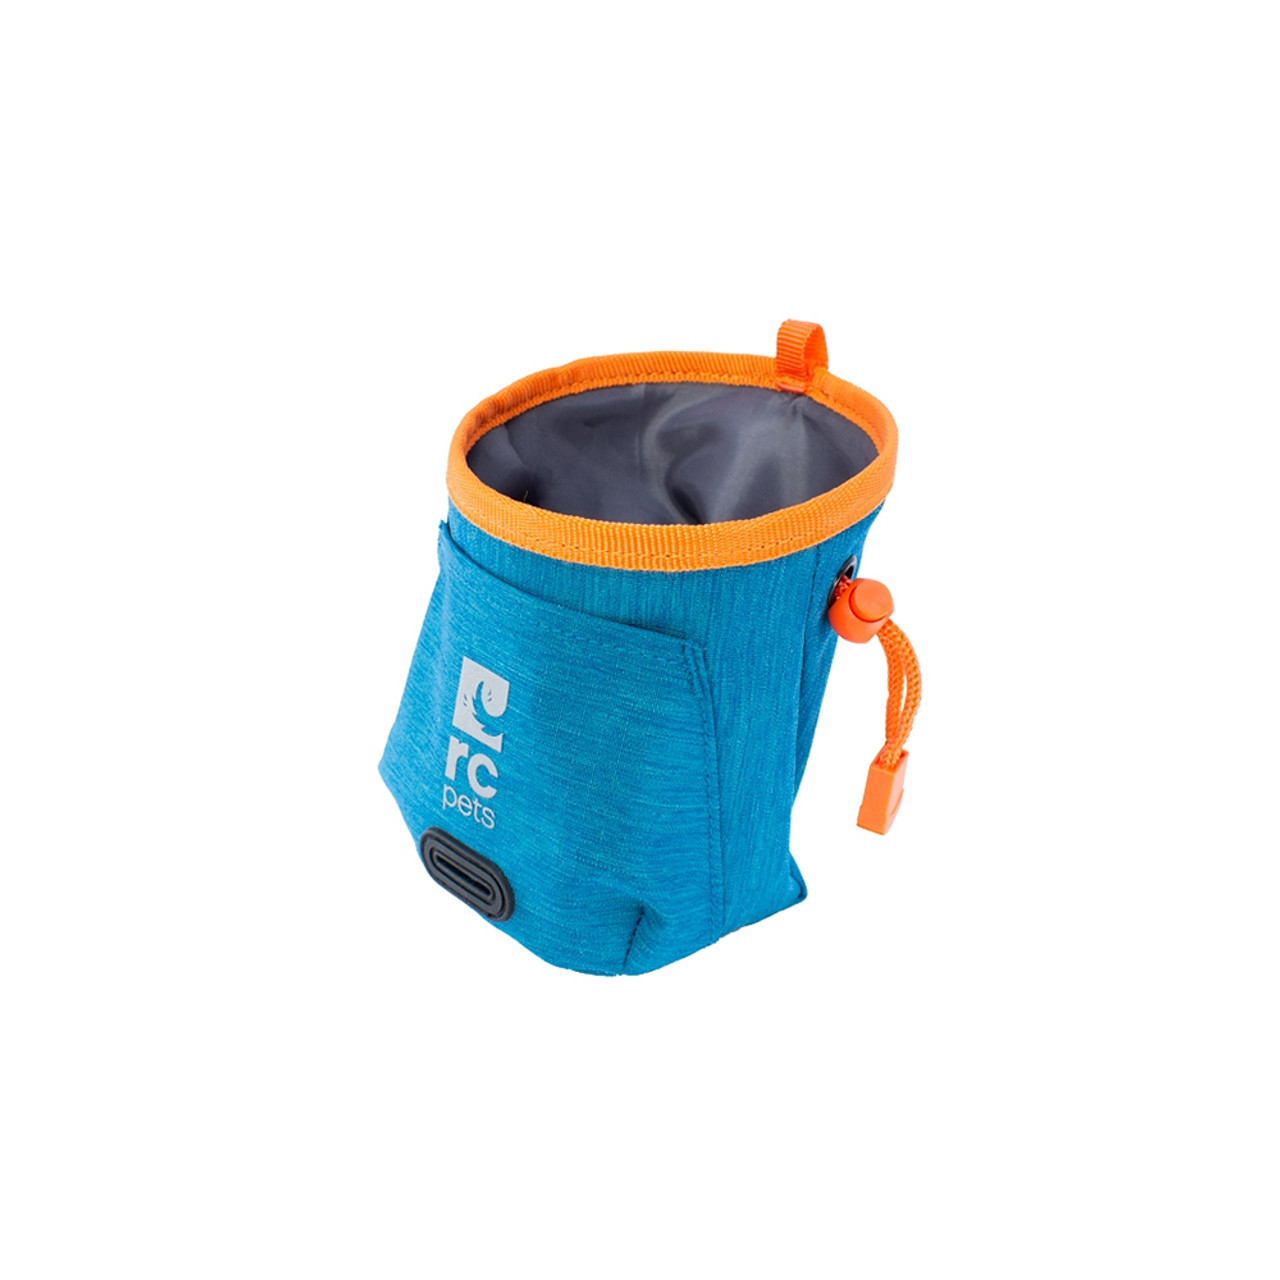 RC Pets Essential Dog Treat Bag